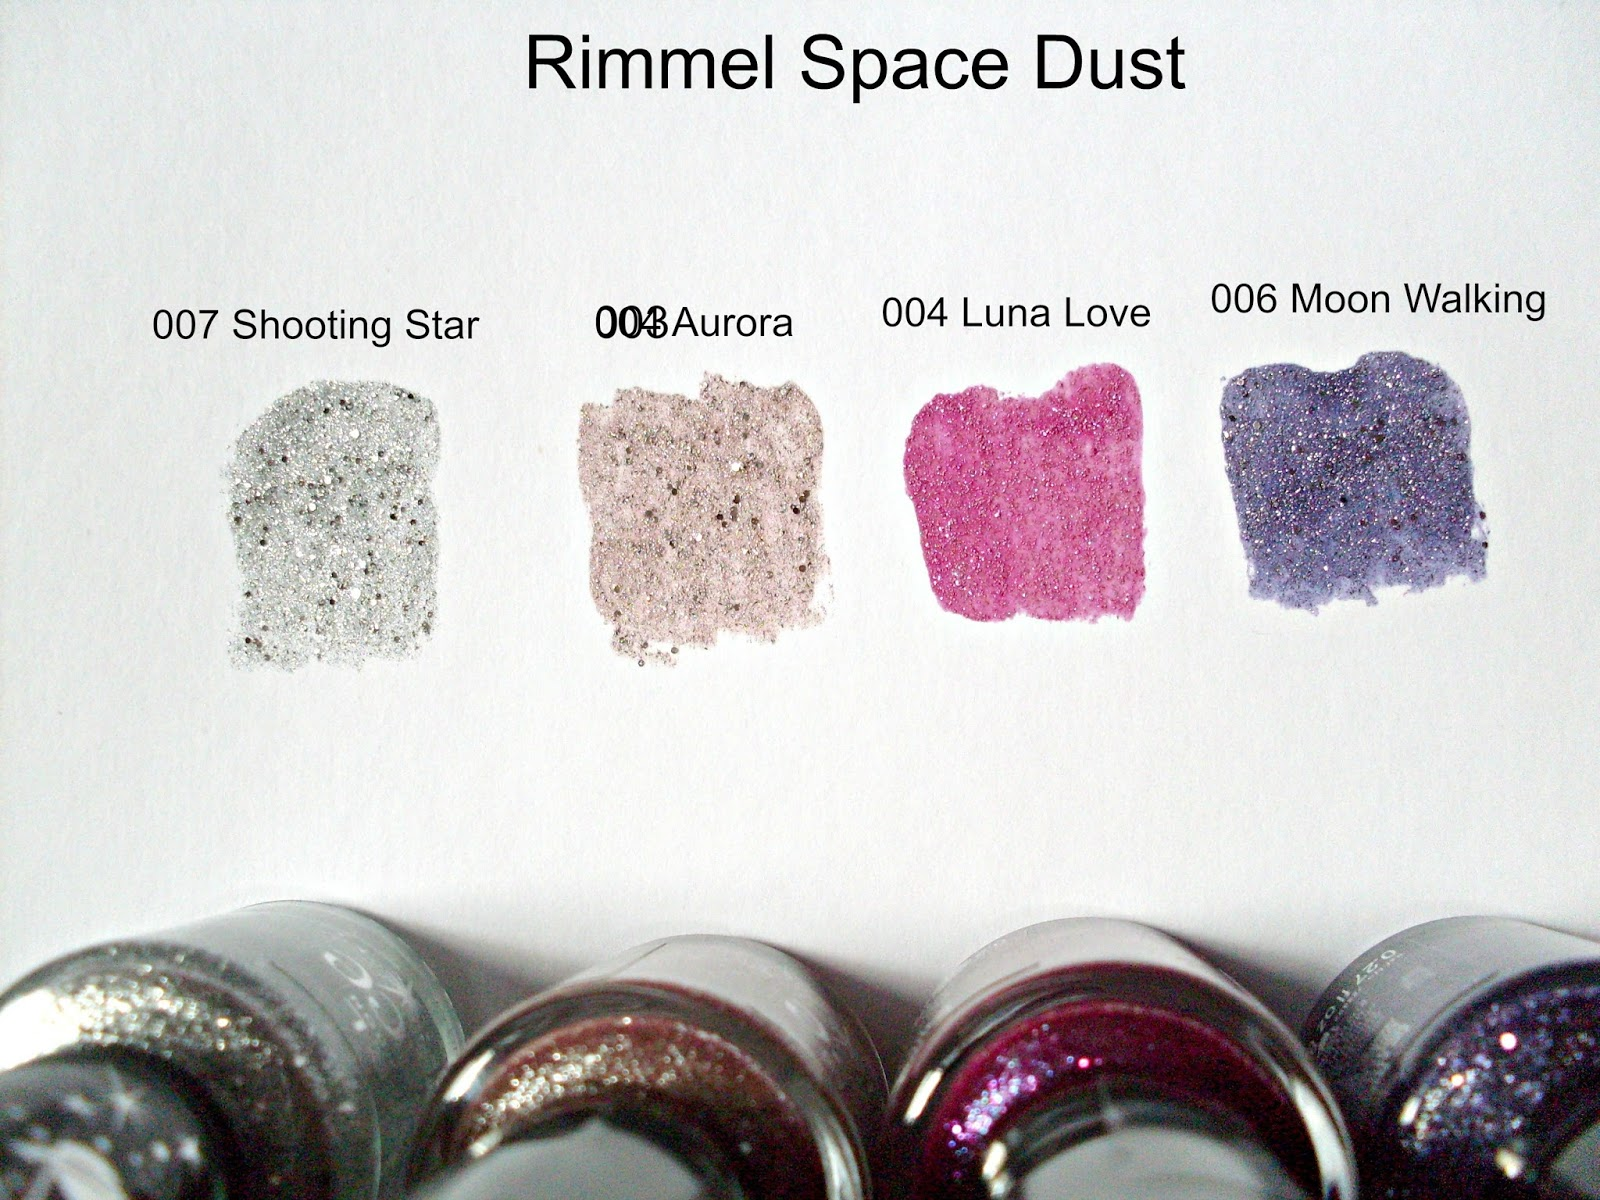 Swatches of Rimmel Space Dusts in 007 Shooting Star, 003 Aurora,  004 Luna Love and 006 Moon Walking